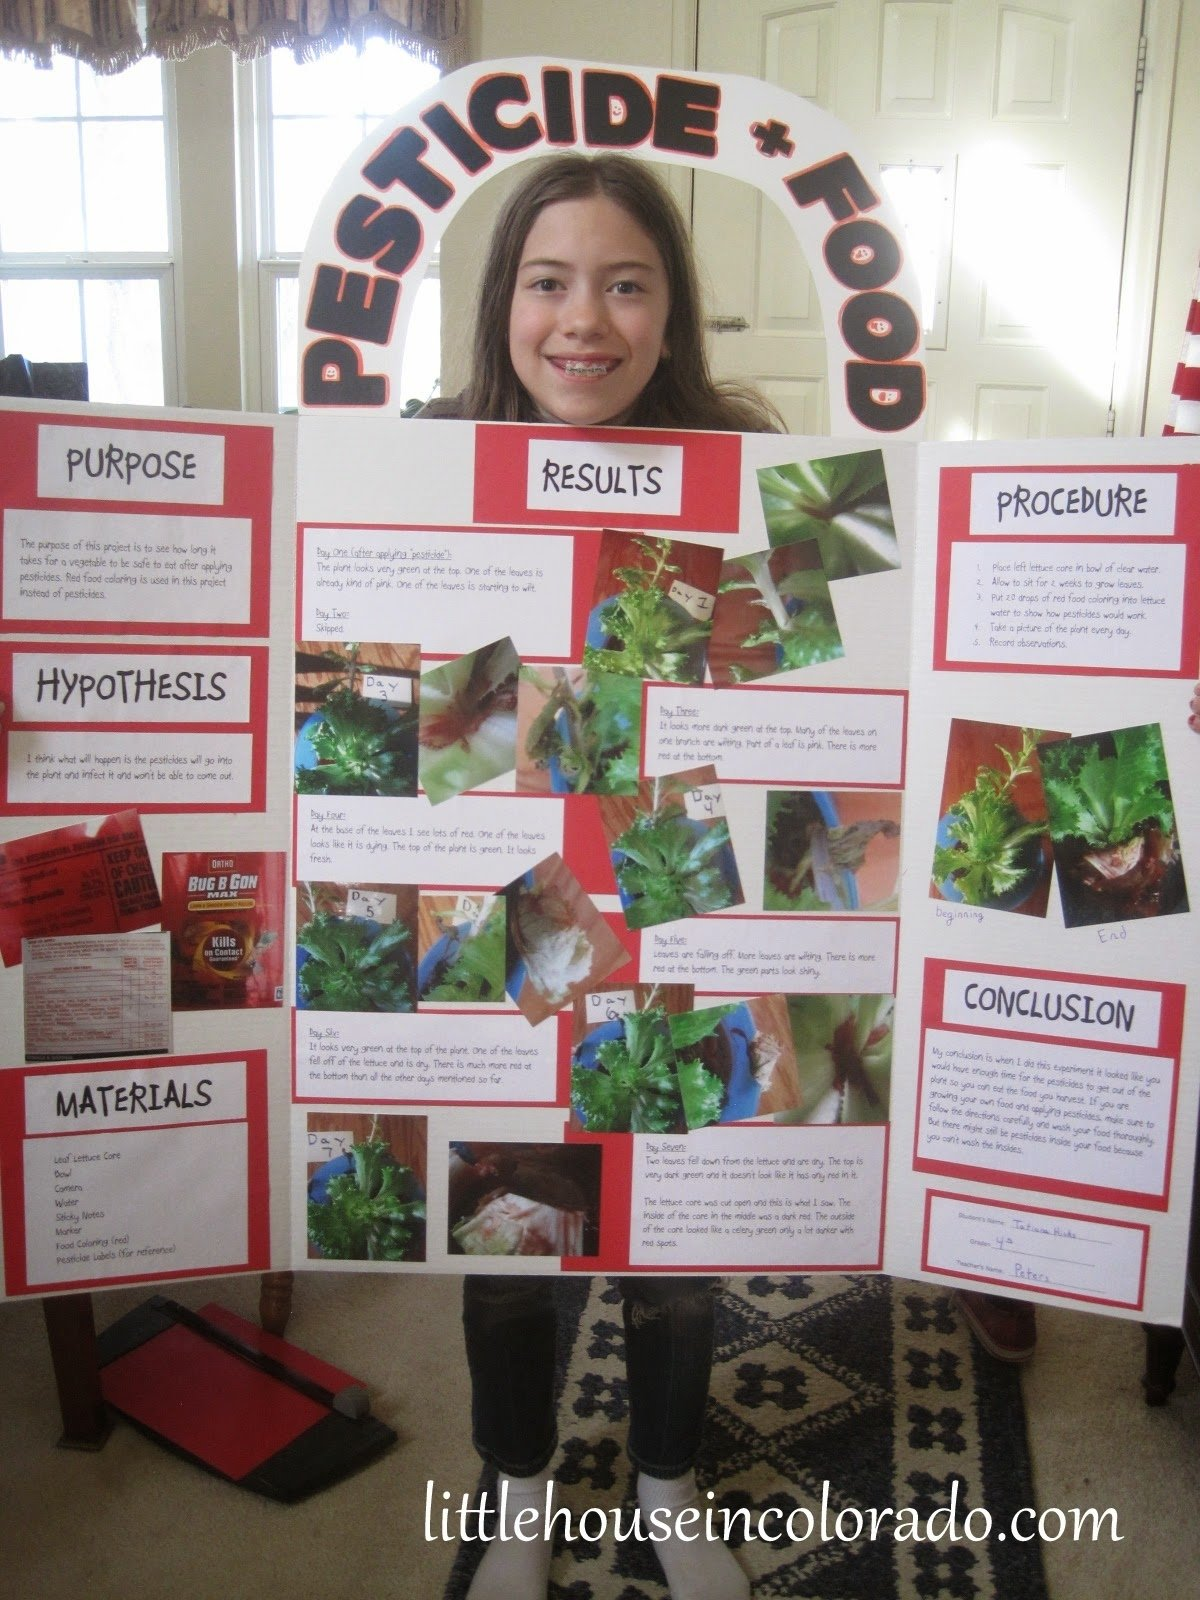 10 Most Popular Ideas For Science Fair Projects For 4Th Graders little house in colorado 4th grade science fair project pesticides 2 2020